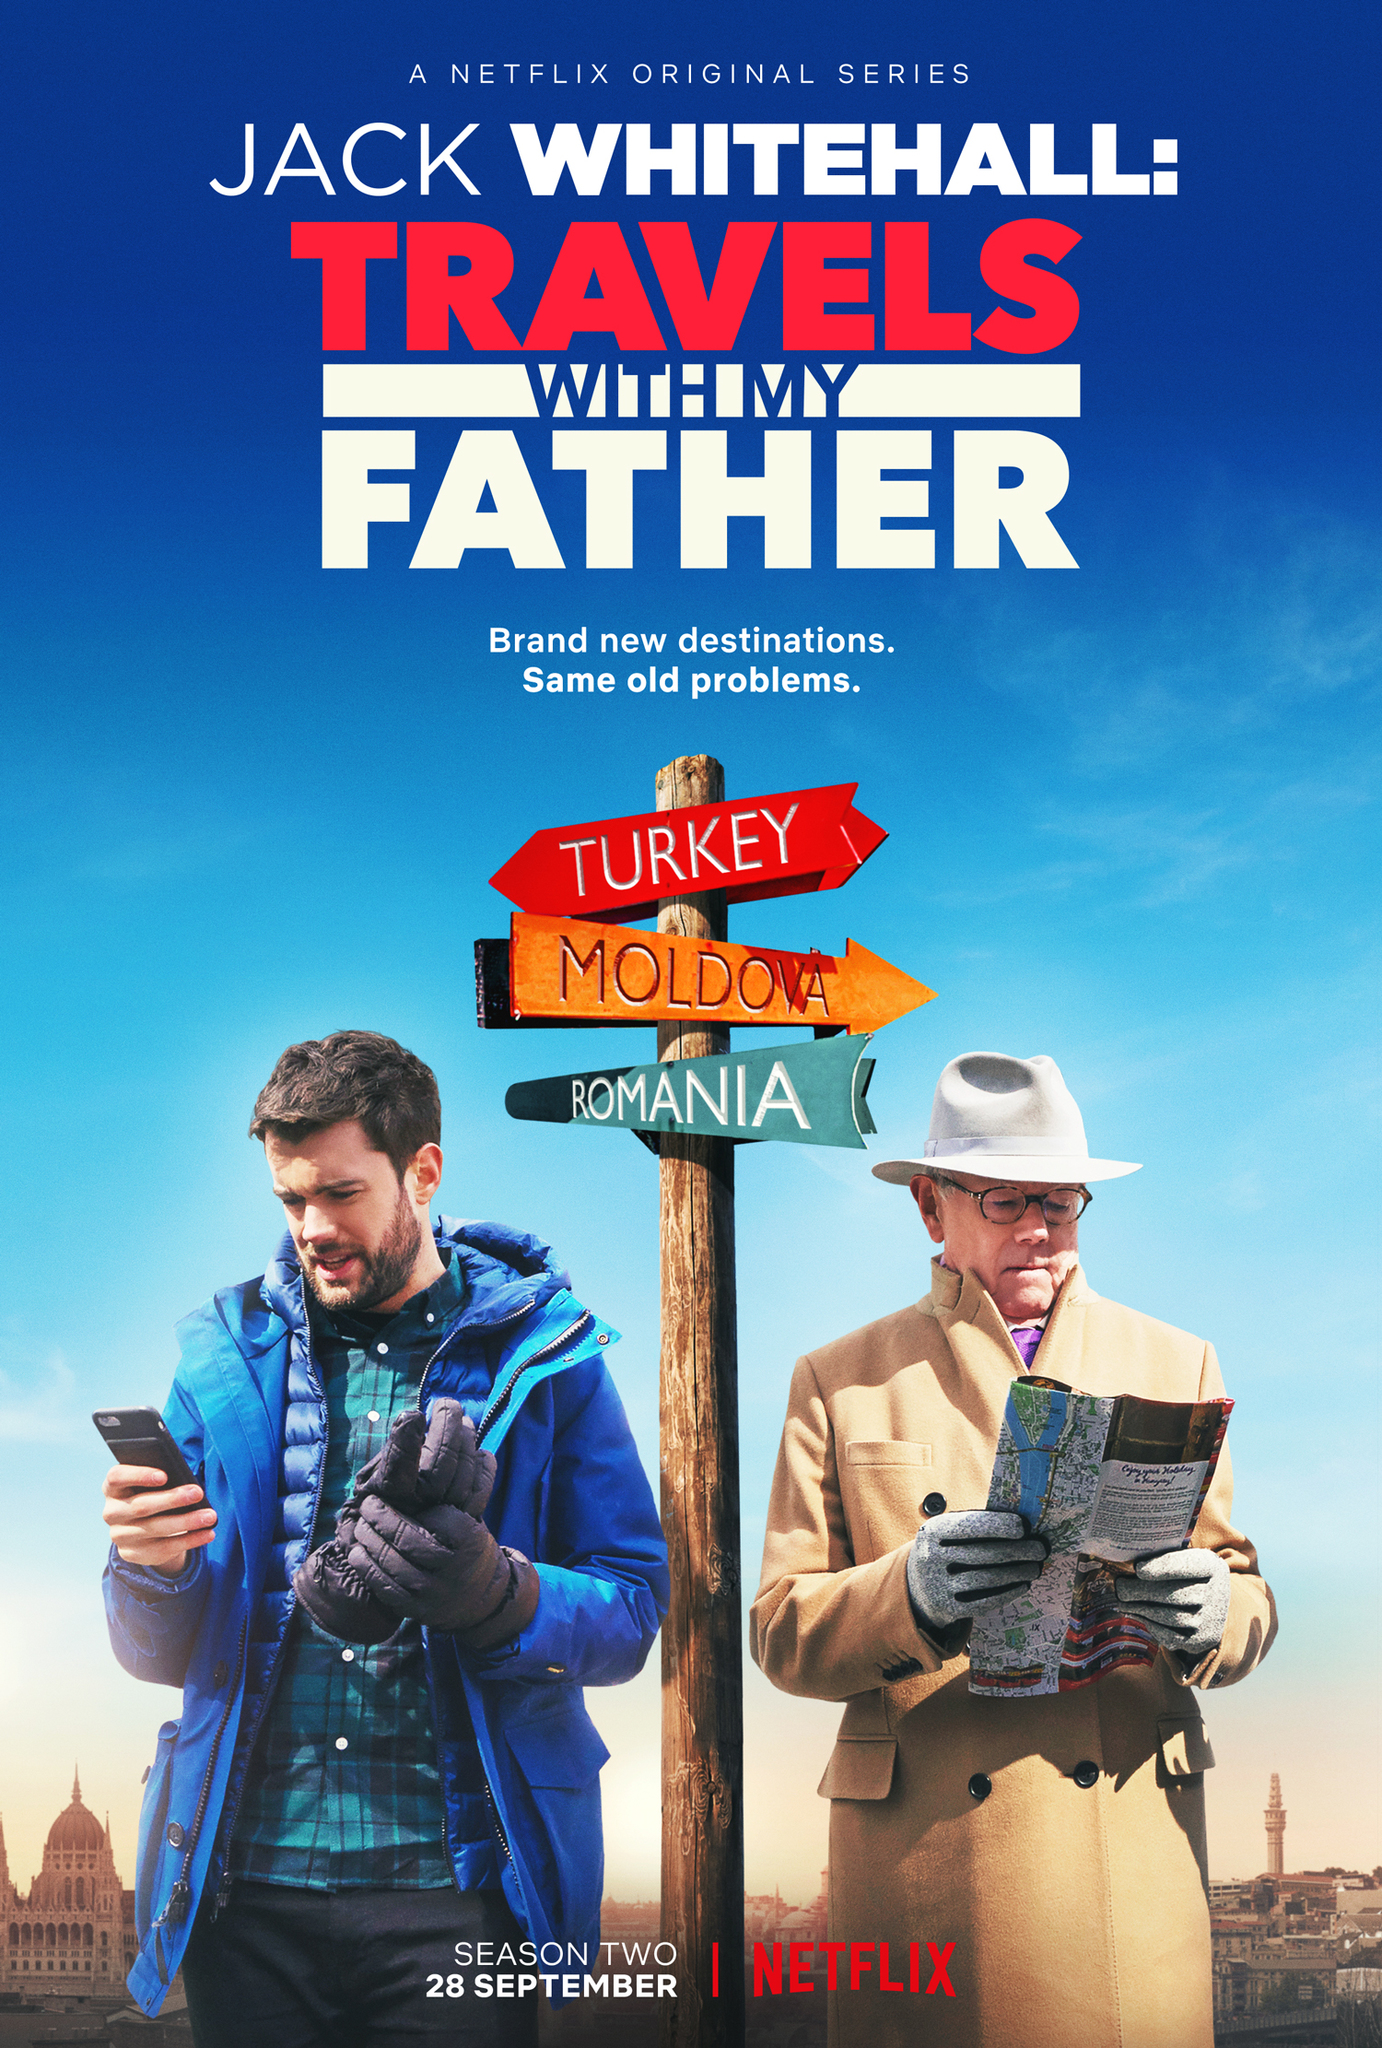 Jack Whitehall: Travels with My Father - Follow Jack Whitehall and his father as they take a gap year to South East Asia and the many wild adventures and mishaps they experience along the way. Laughs will ensue.